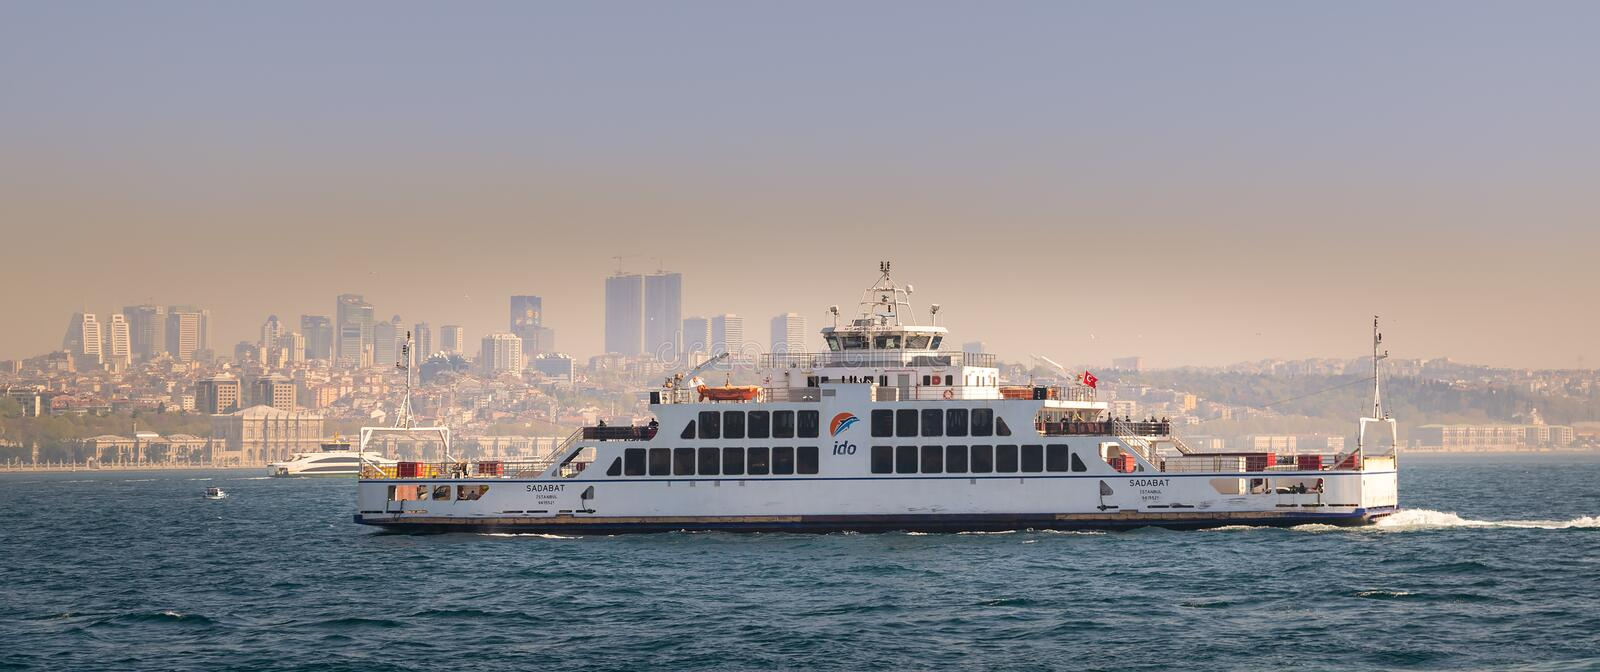 Turkish Ferry boat named Sadabat owned by Istanbul Deniz Otobusleri Co, IDO passing through Marmara Sea. Istanbul, Turkey - April 26, 2017: View from of the sea royalty free stock photography